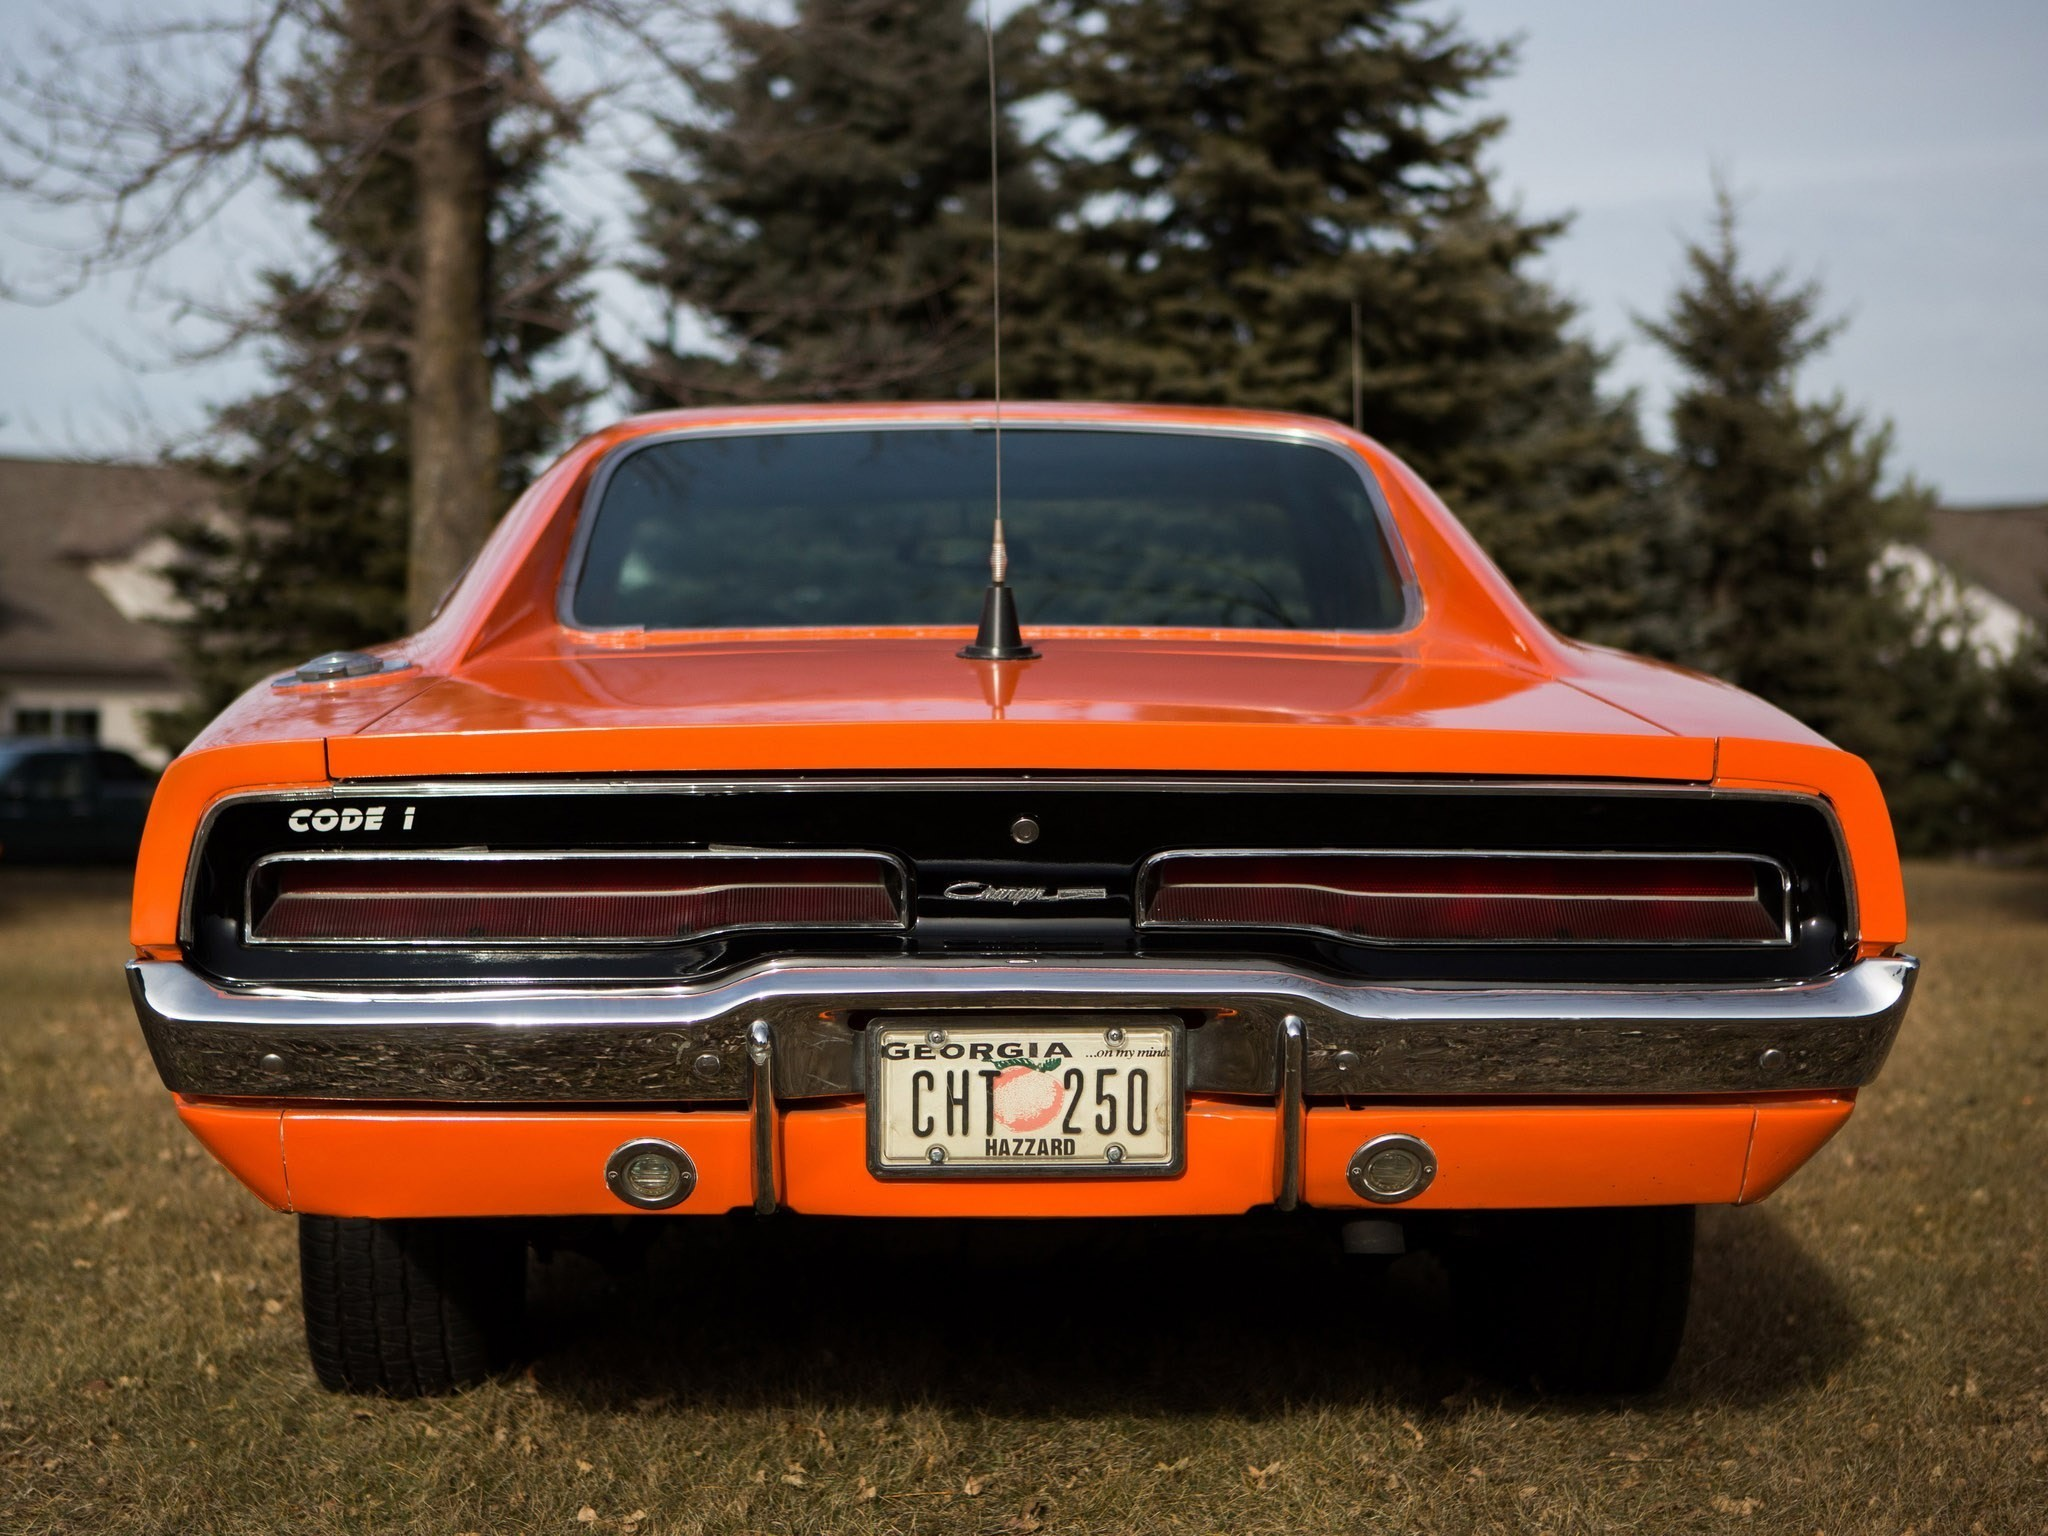 2048x1536 1969 Dodge Charger Rt Wallpaper Image 522 General Lee